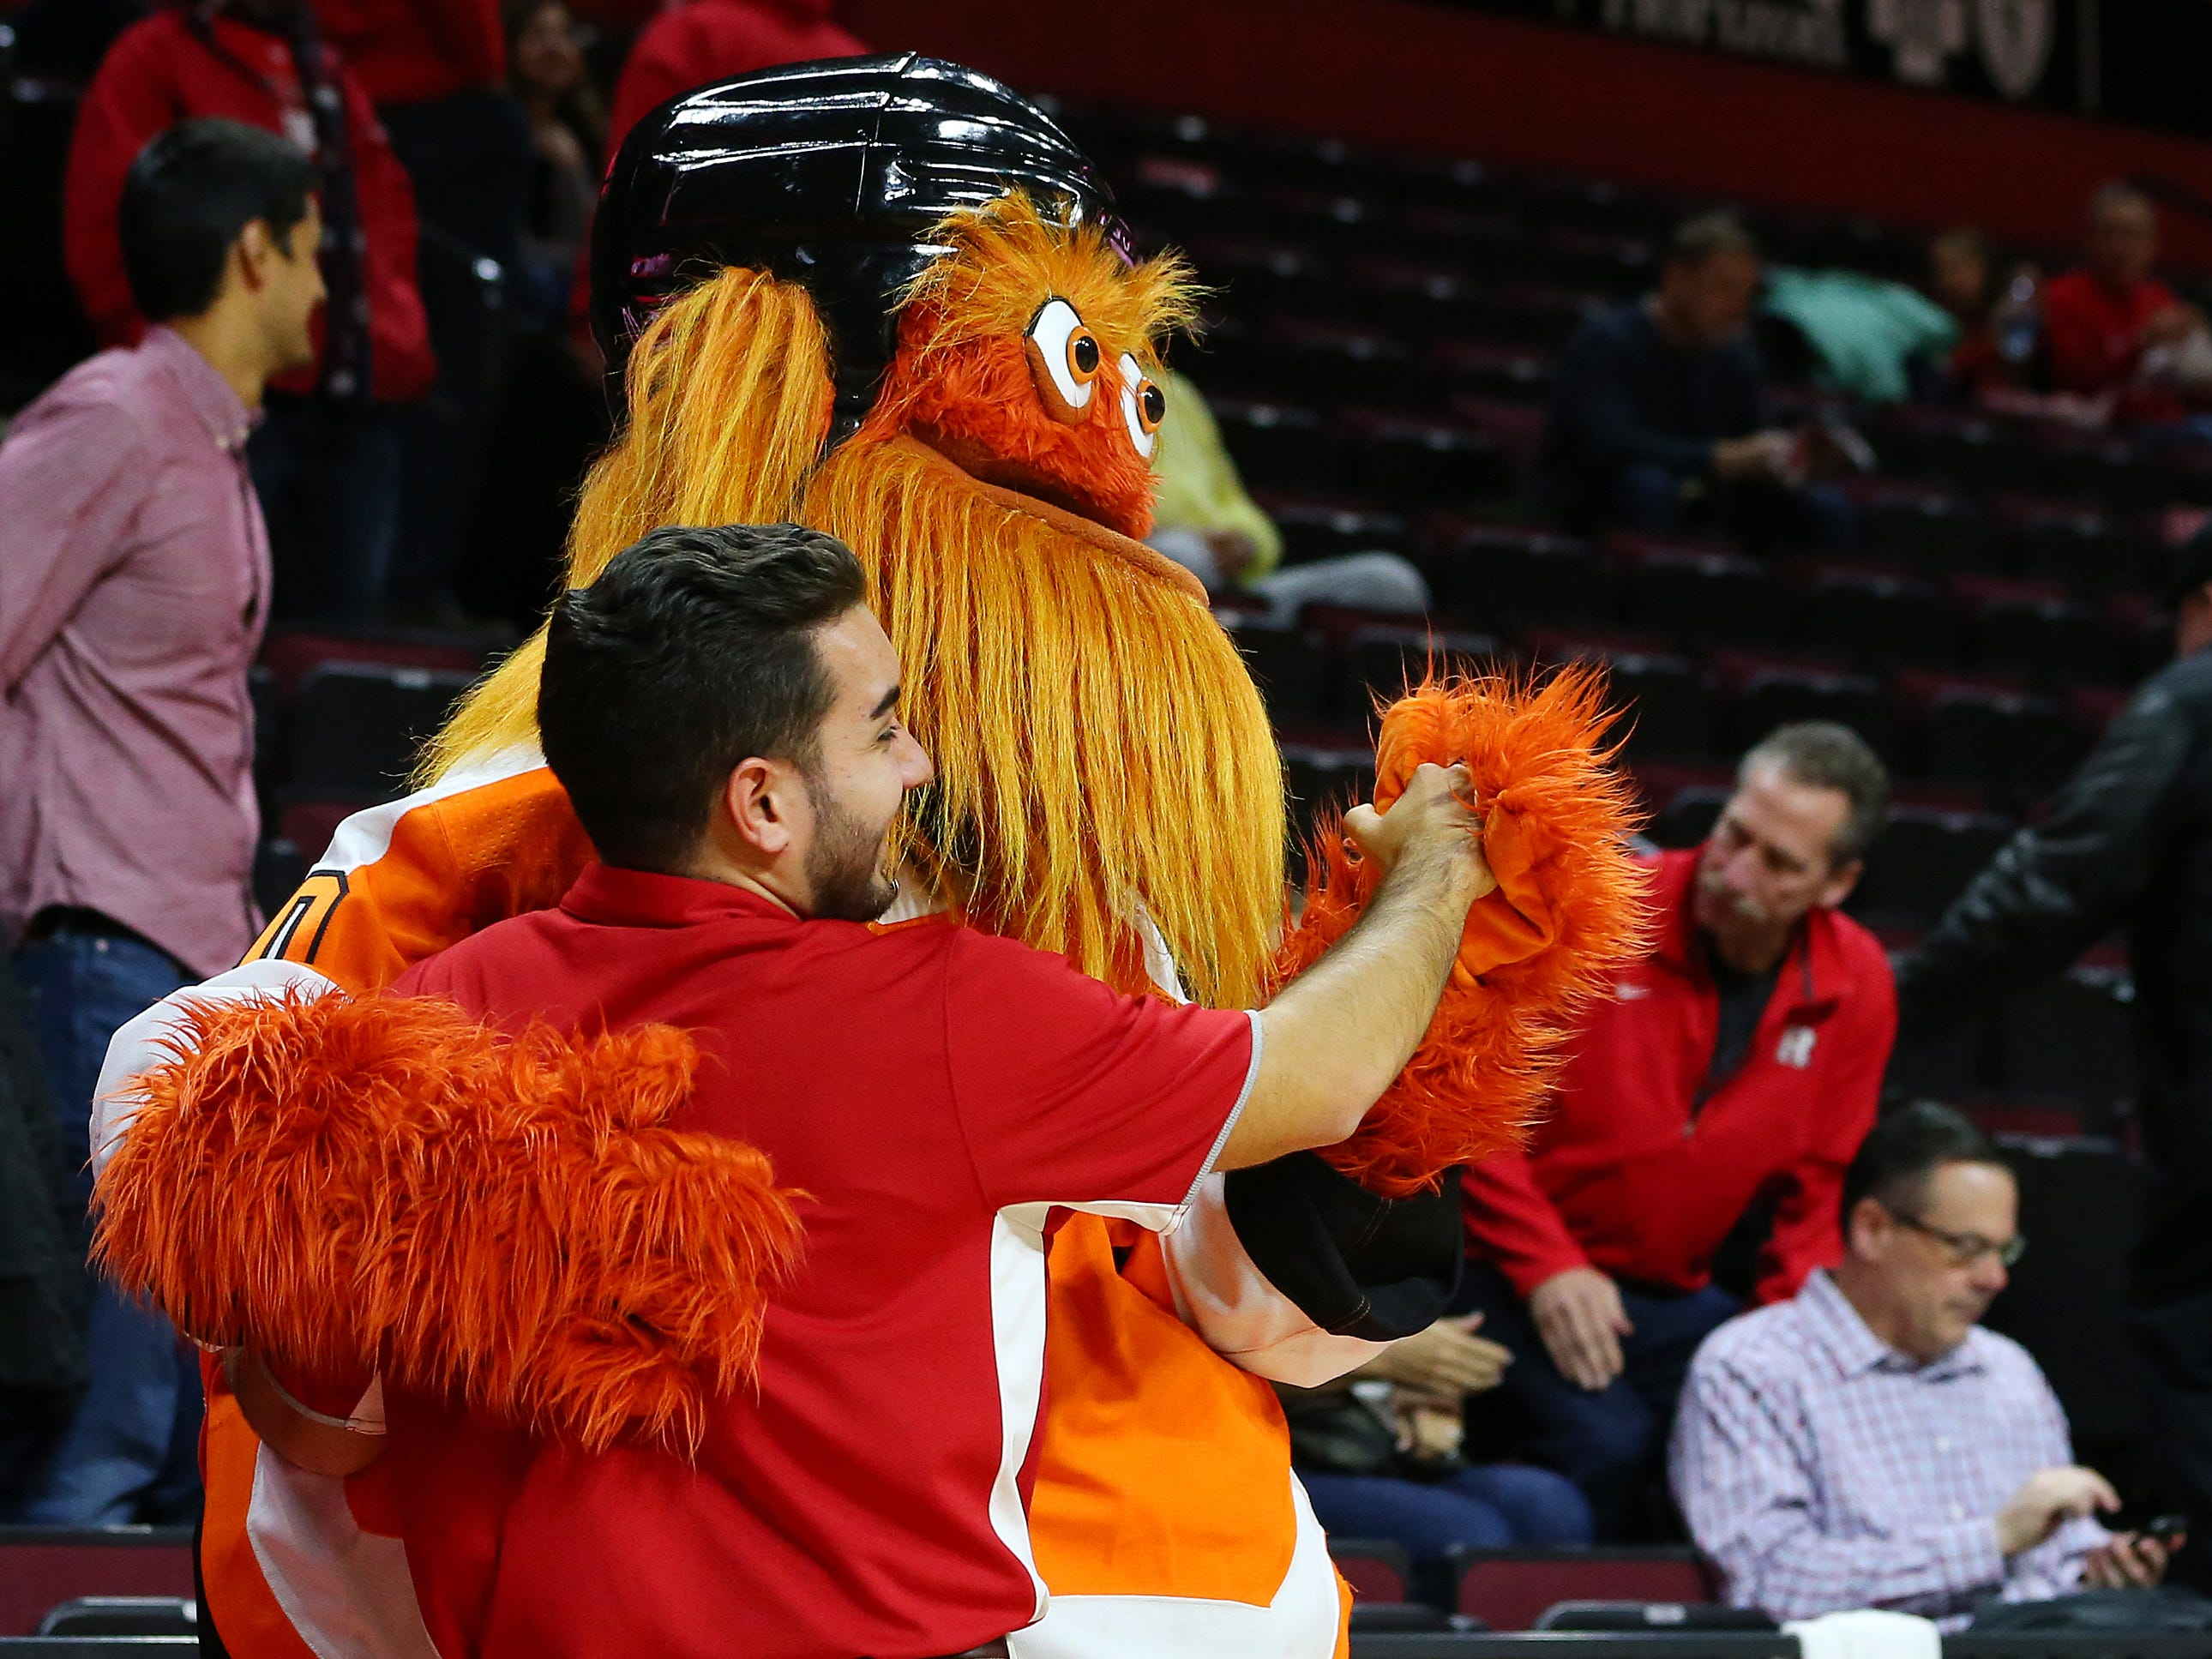 Gritty, the mascot of the Philadelphia Flyers NHL hockey team, dances with an usher before a college basketball game between the Michigan State Spartans and Rutgers Scarlet Knights at the Rutgers Athletic Center on November 30, 2018 in Piscataway, New Jersey.